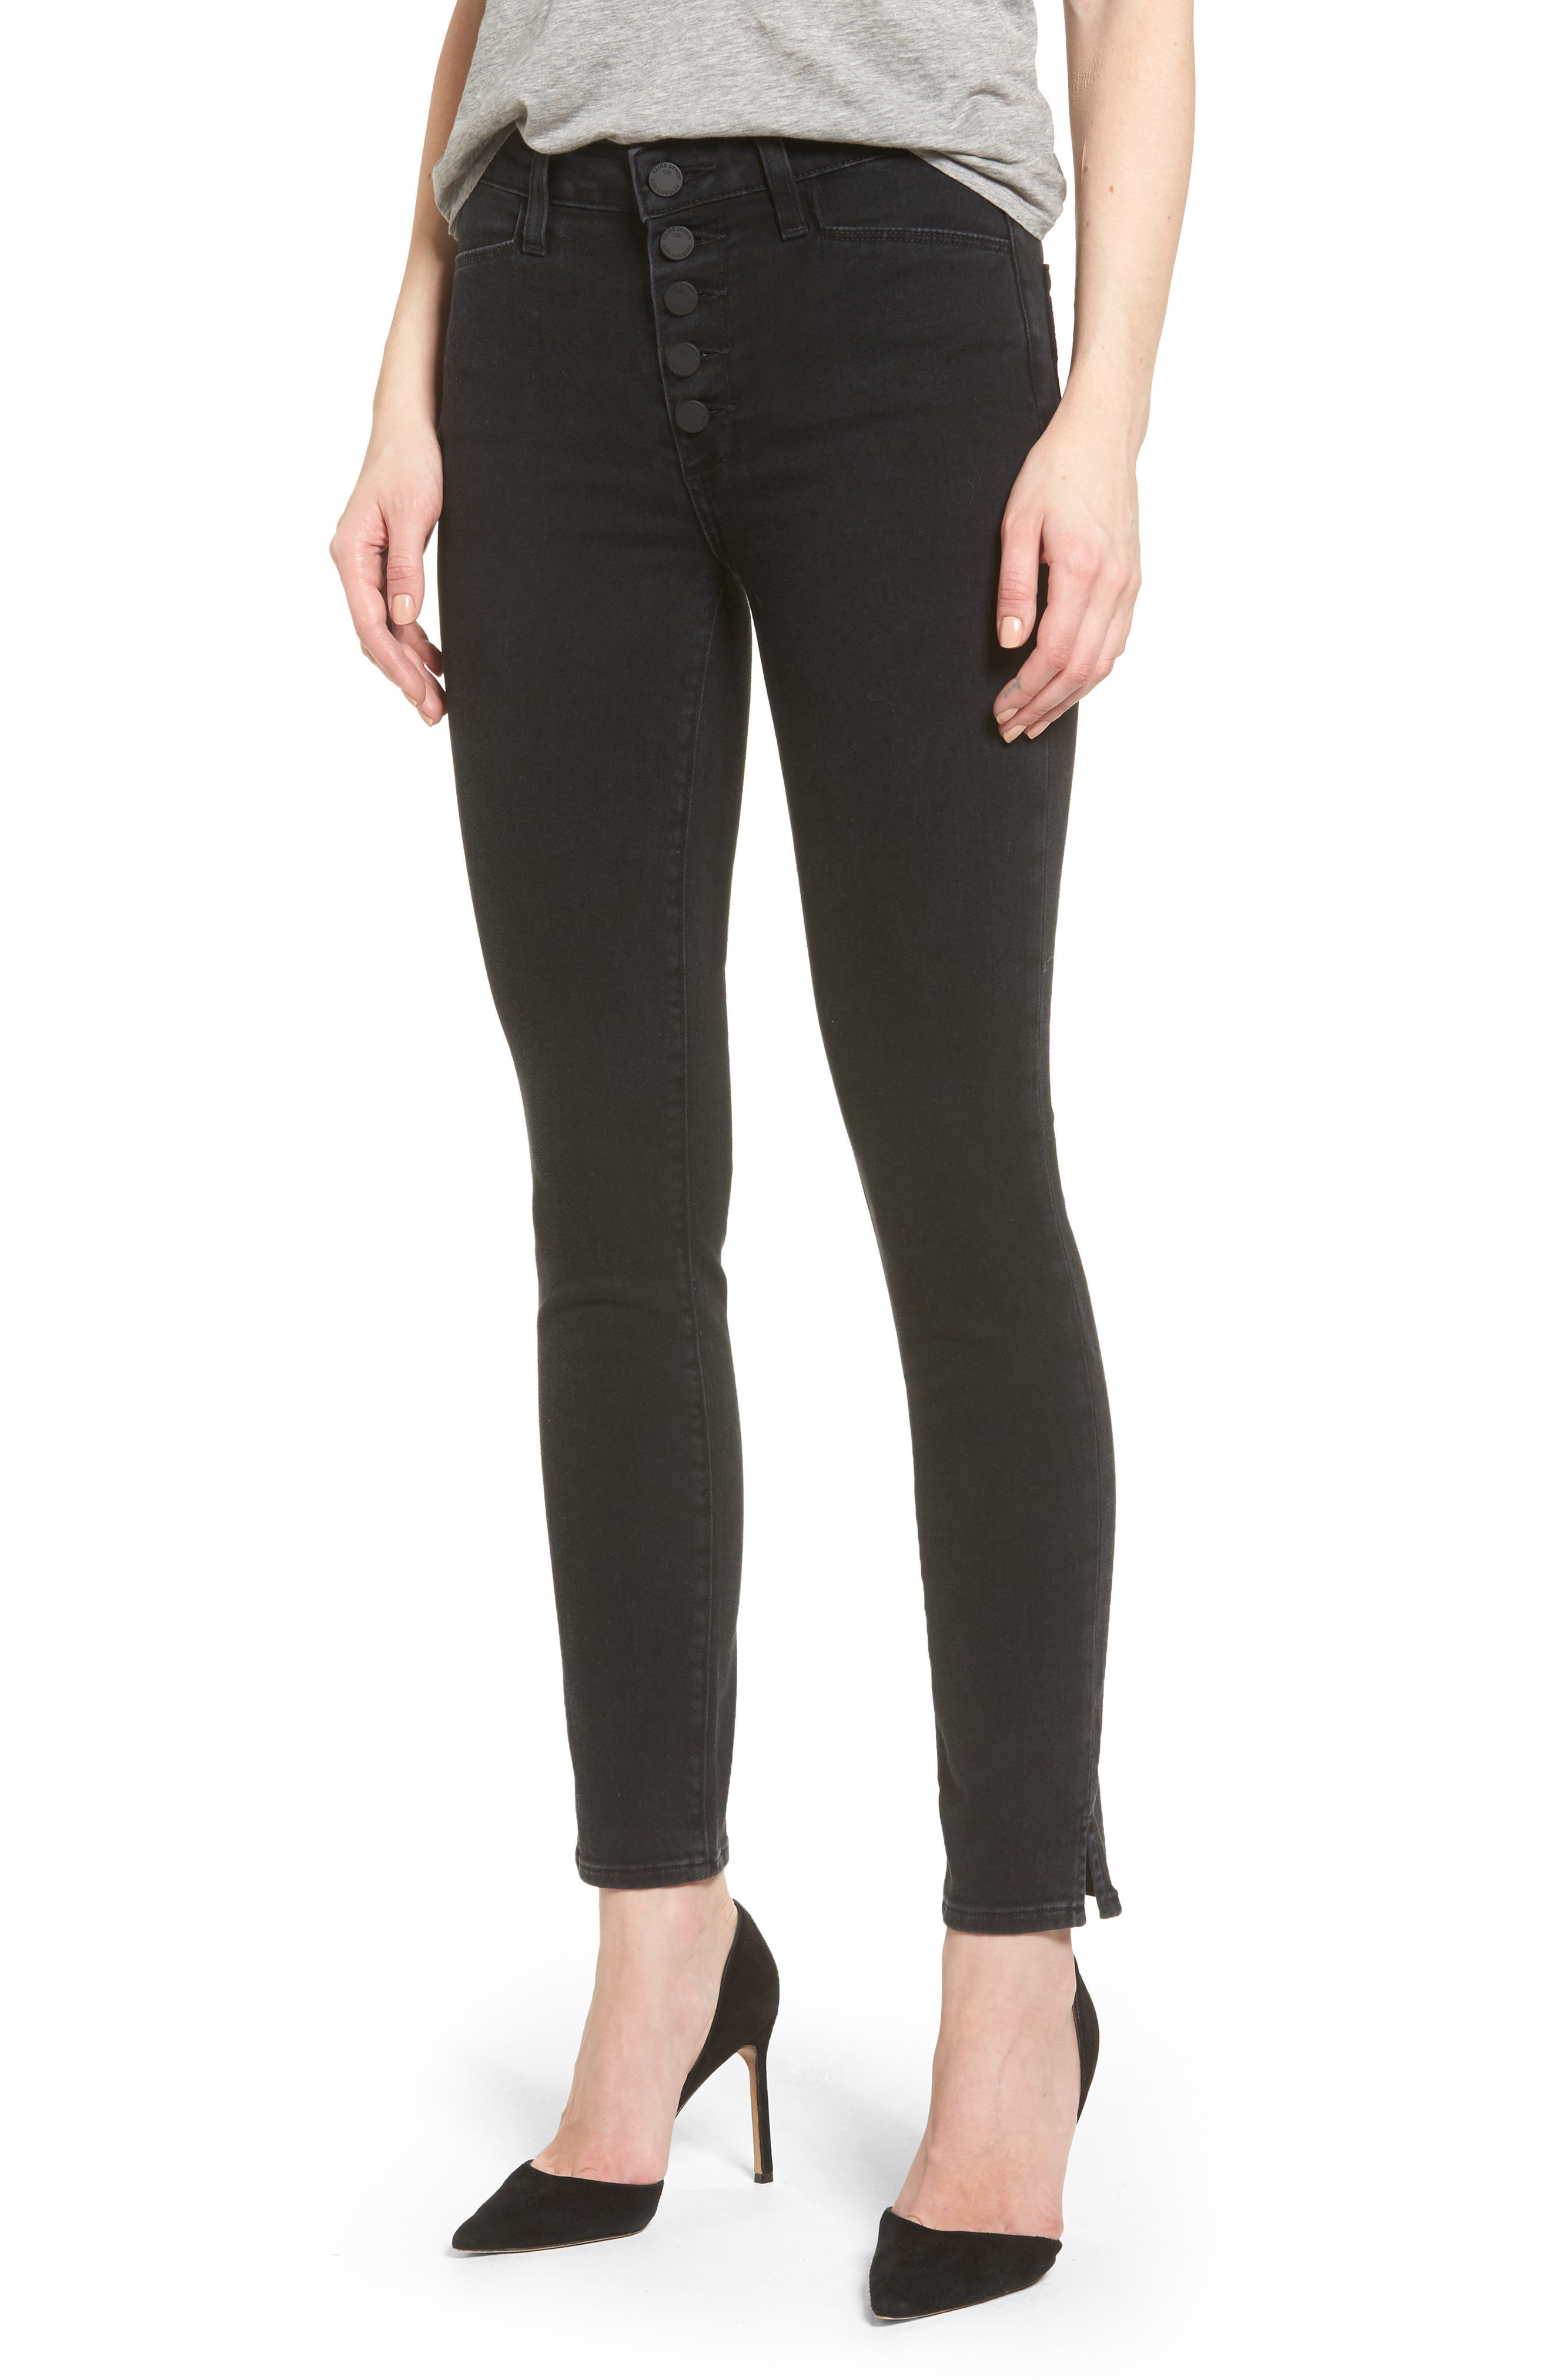 PAIGE Hoxton Button High Waist Ankle Skinny Jeans